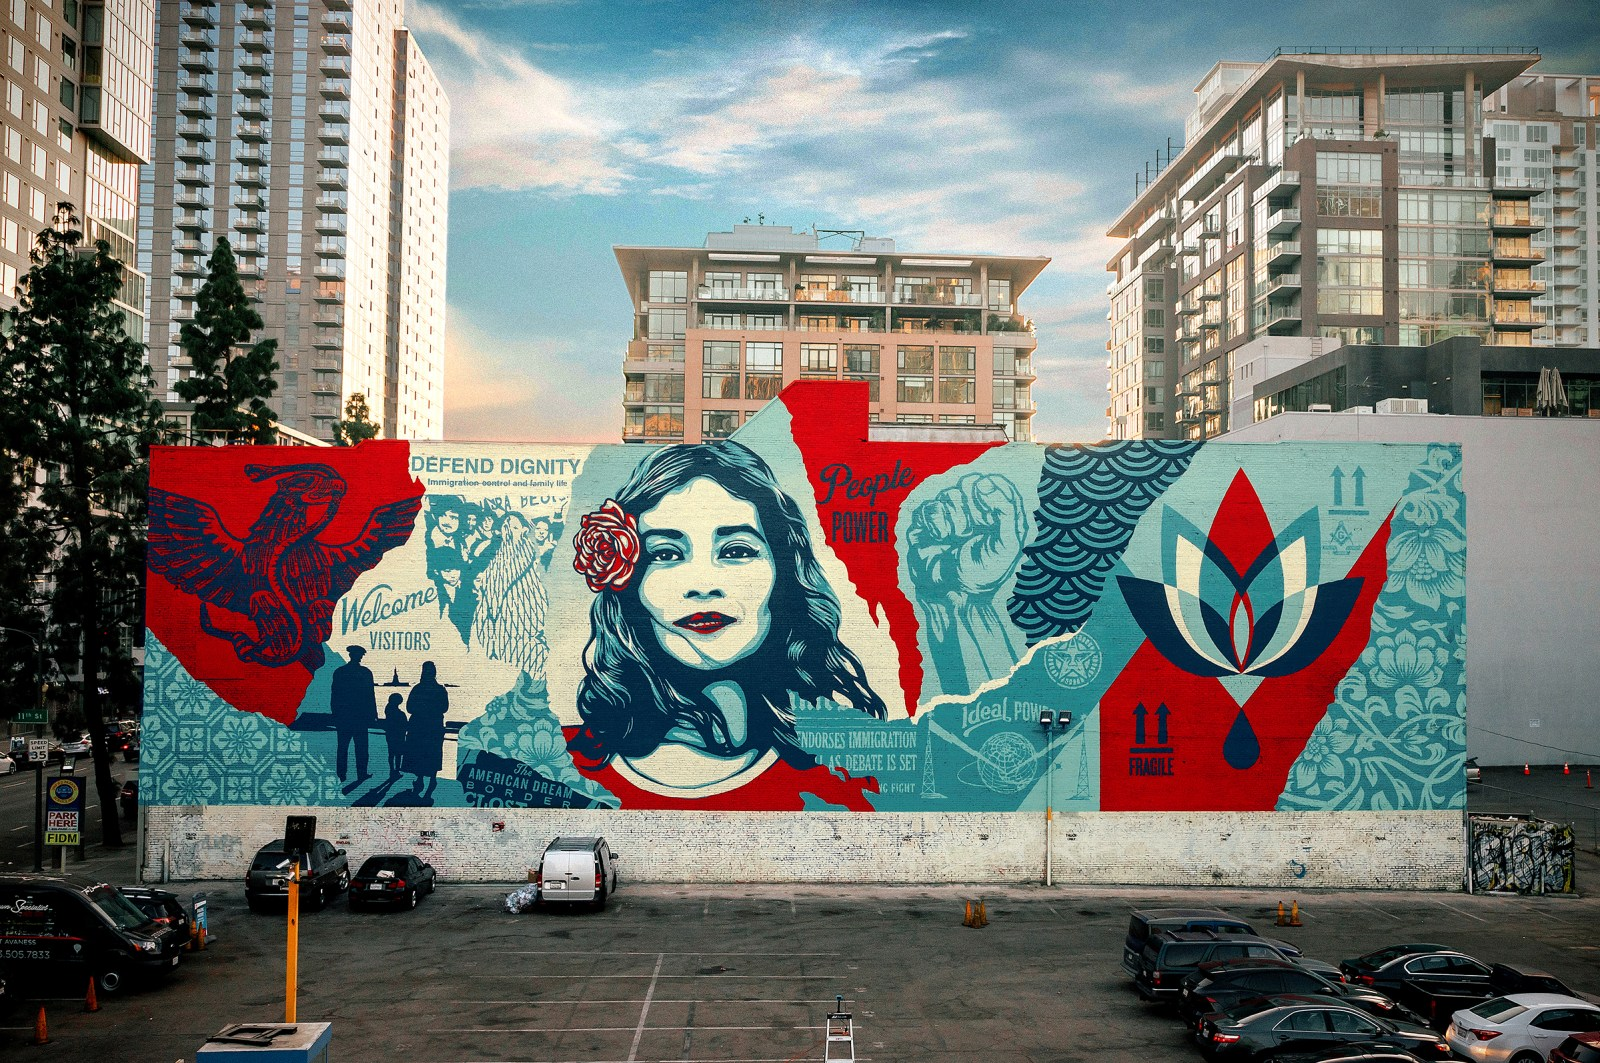 Street art called Defend Dignity by Shepard Fairey in Downtown LA